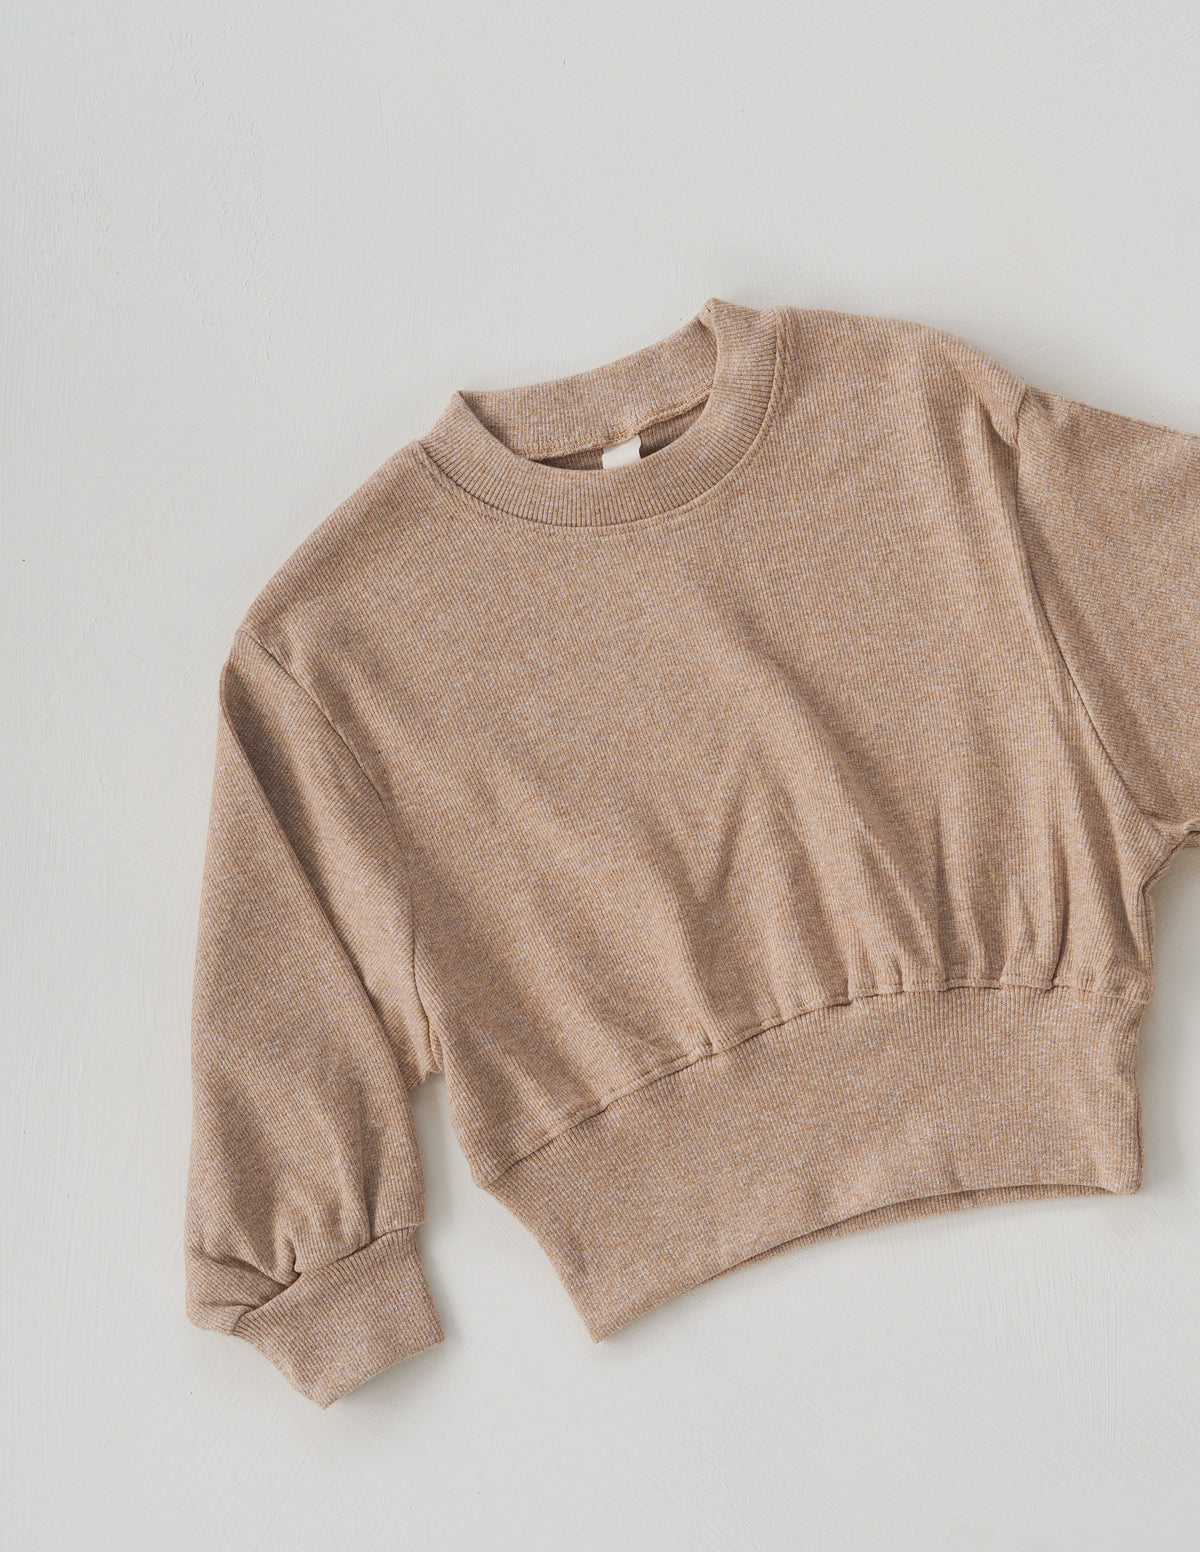 The Lounge Pullover - Tan Marle